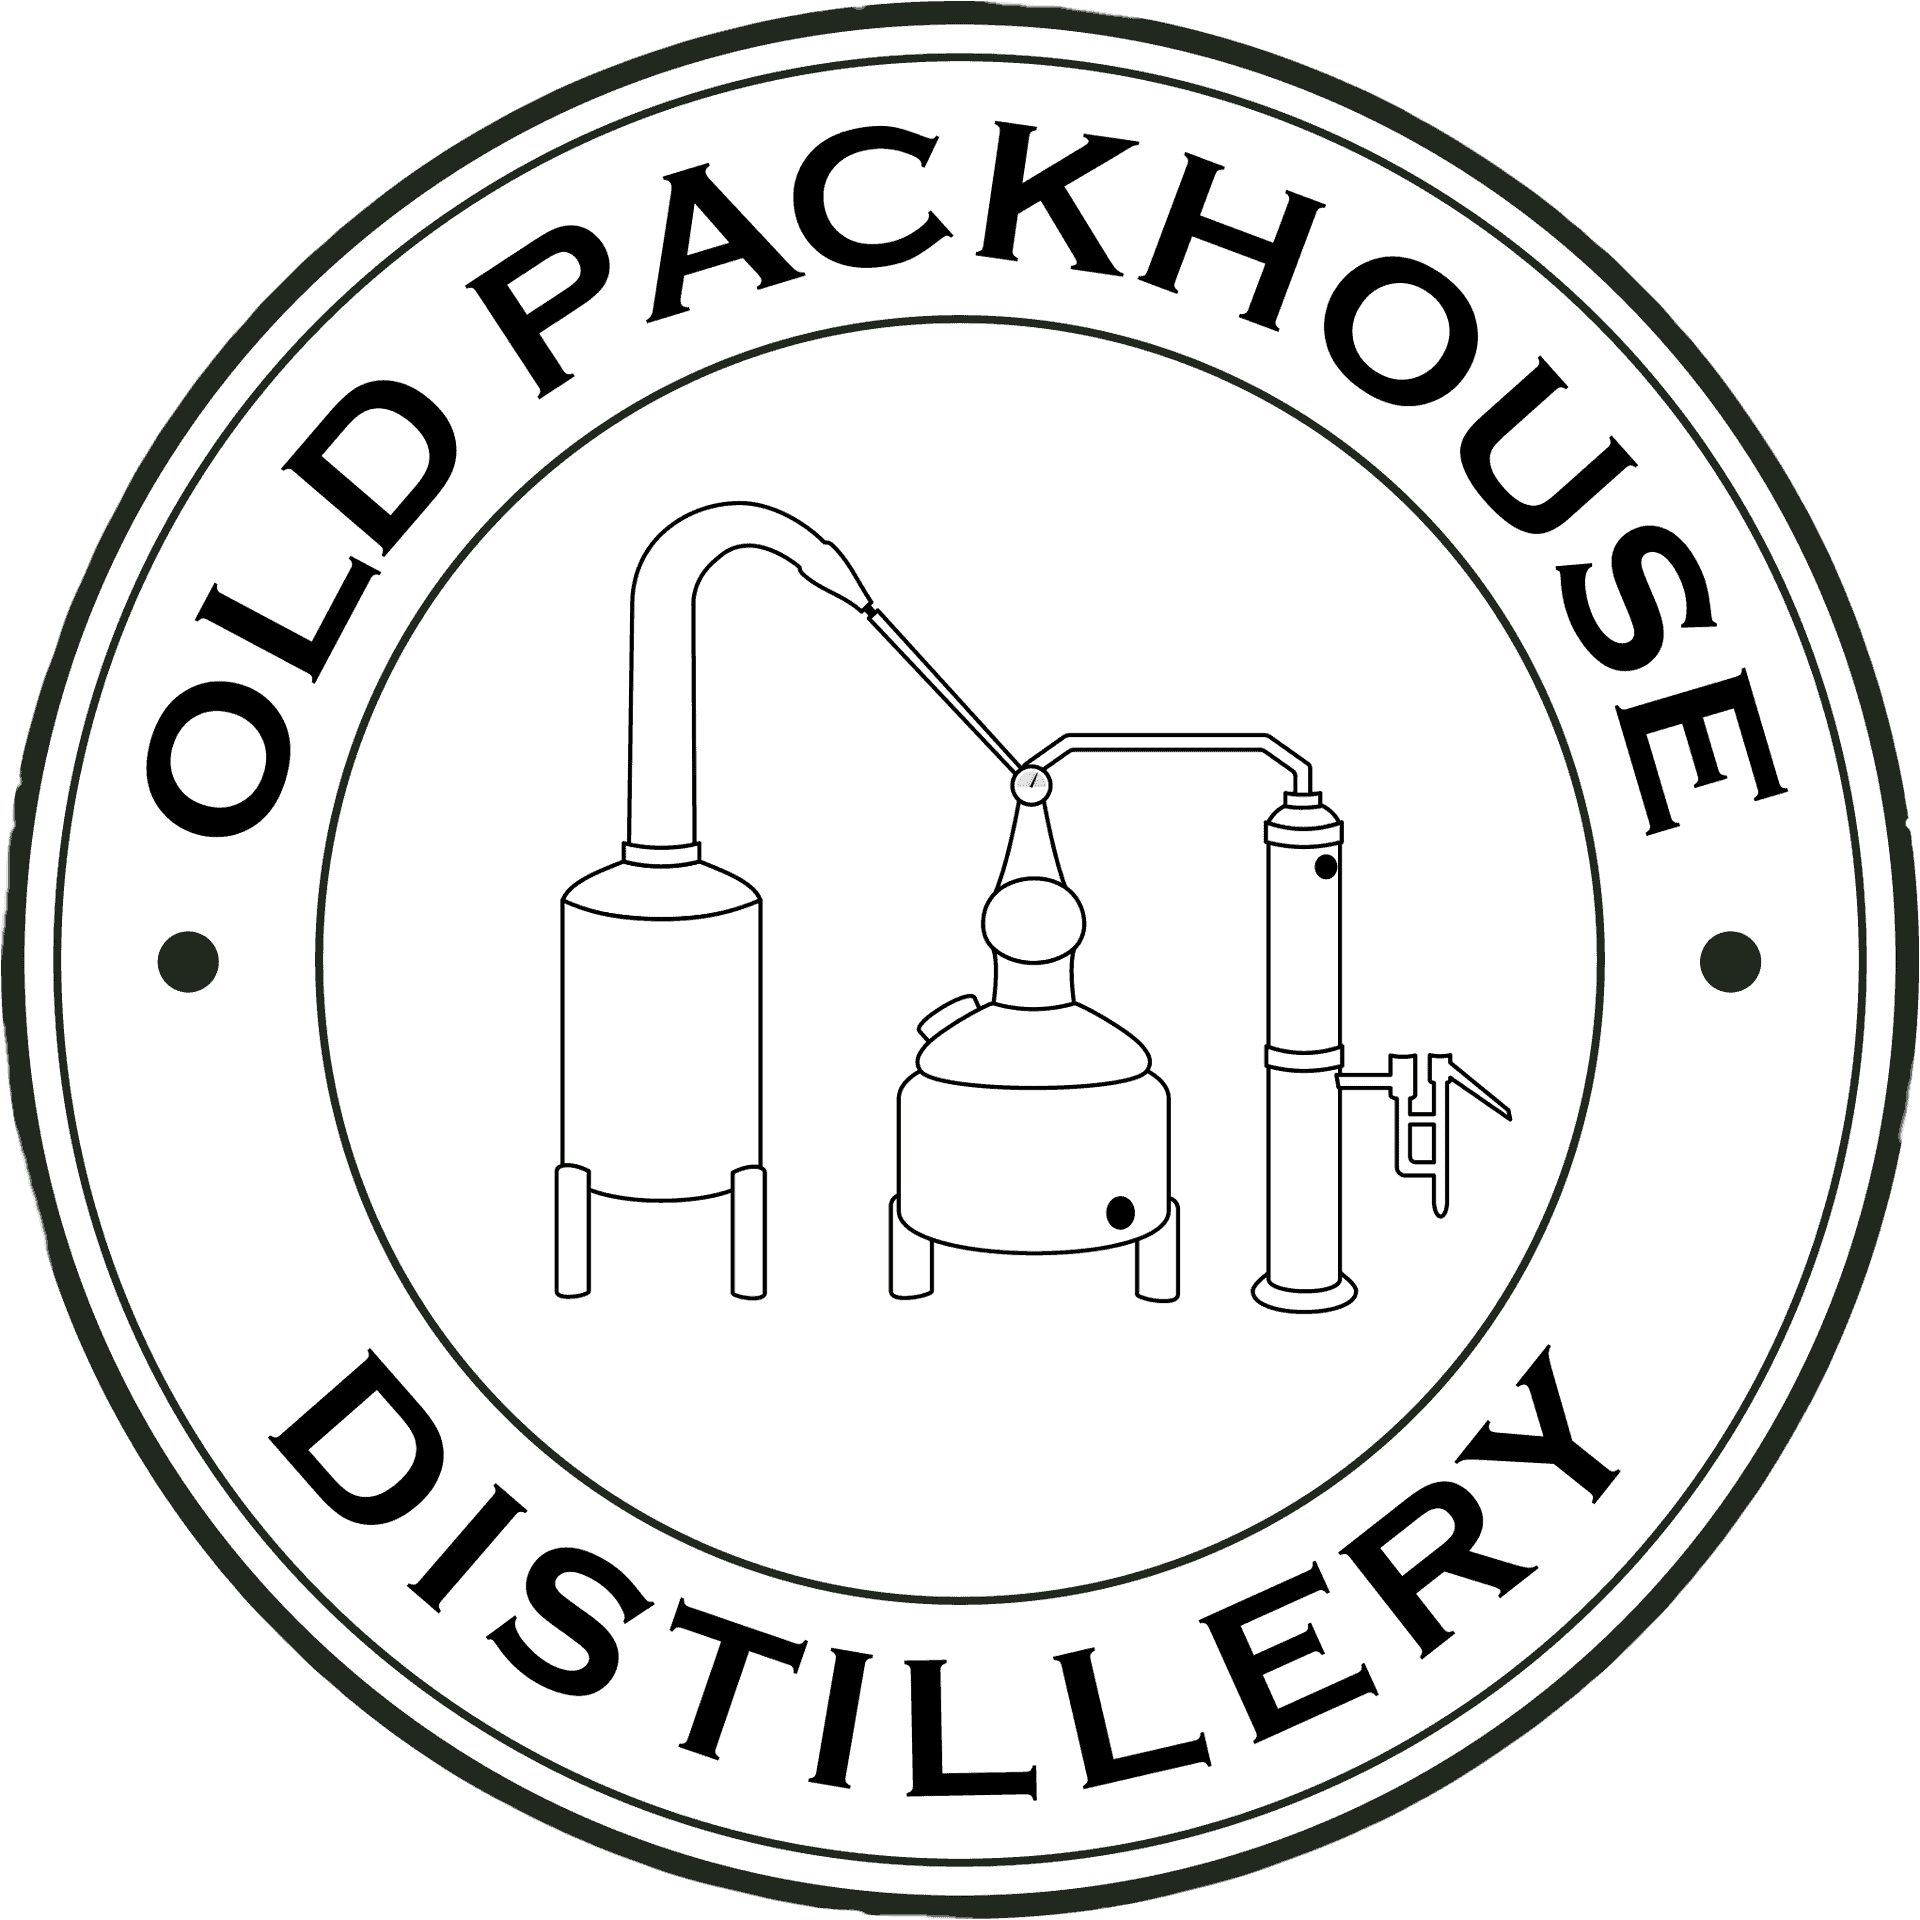 The Old Packhouse Distillery